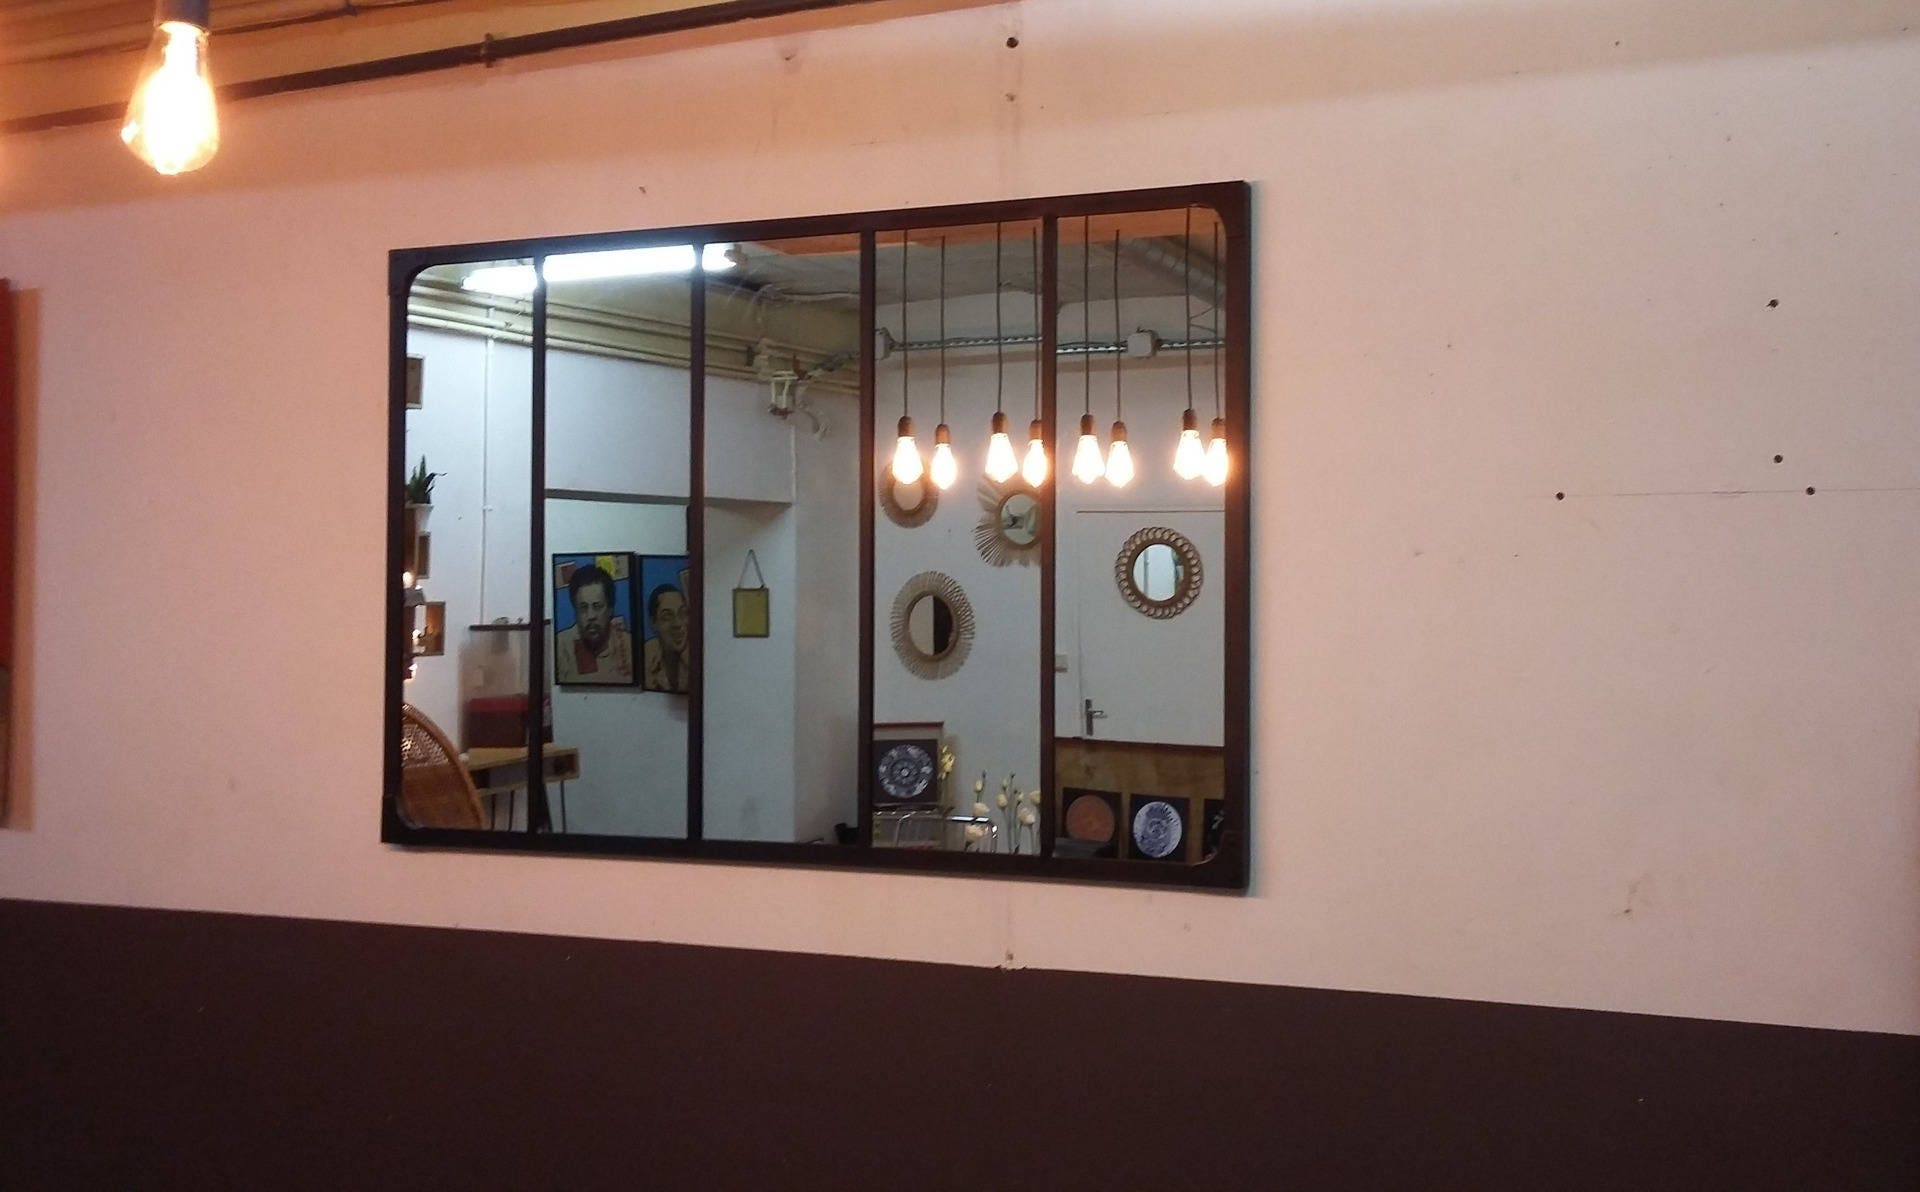 Miroir style verriere industriel 150 x 100 for Miroir verriere